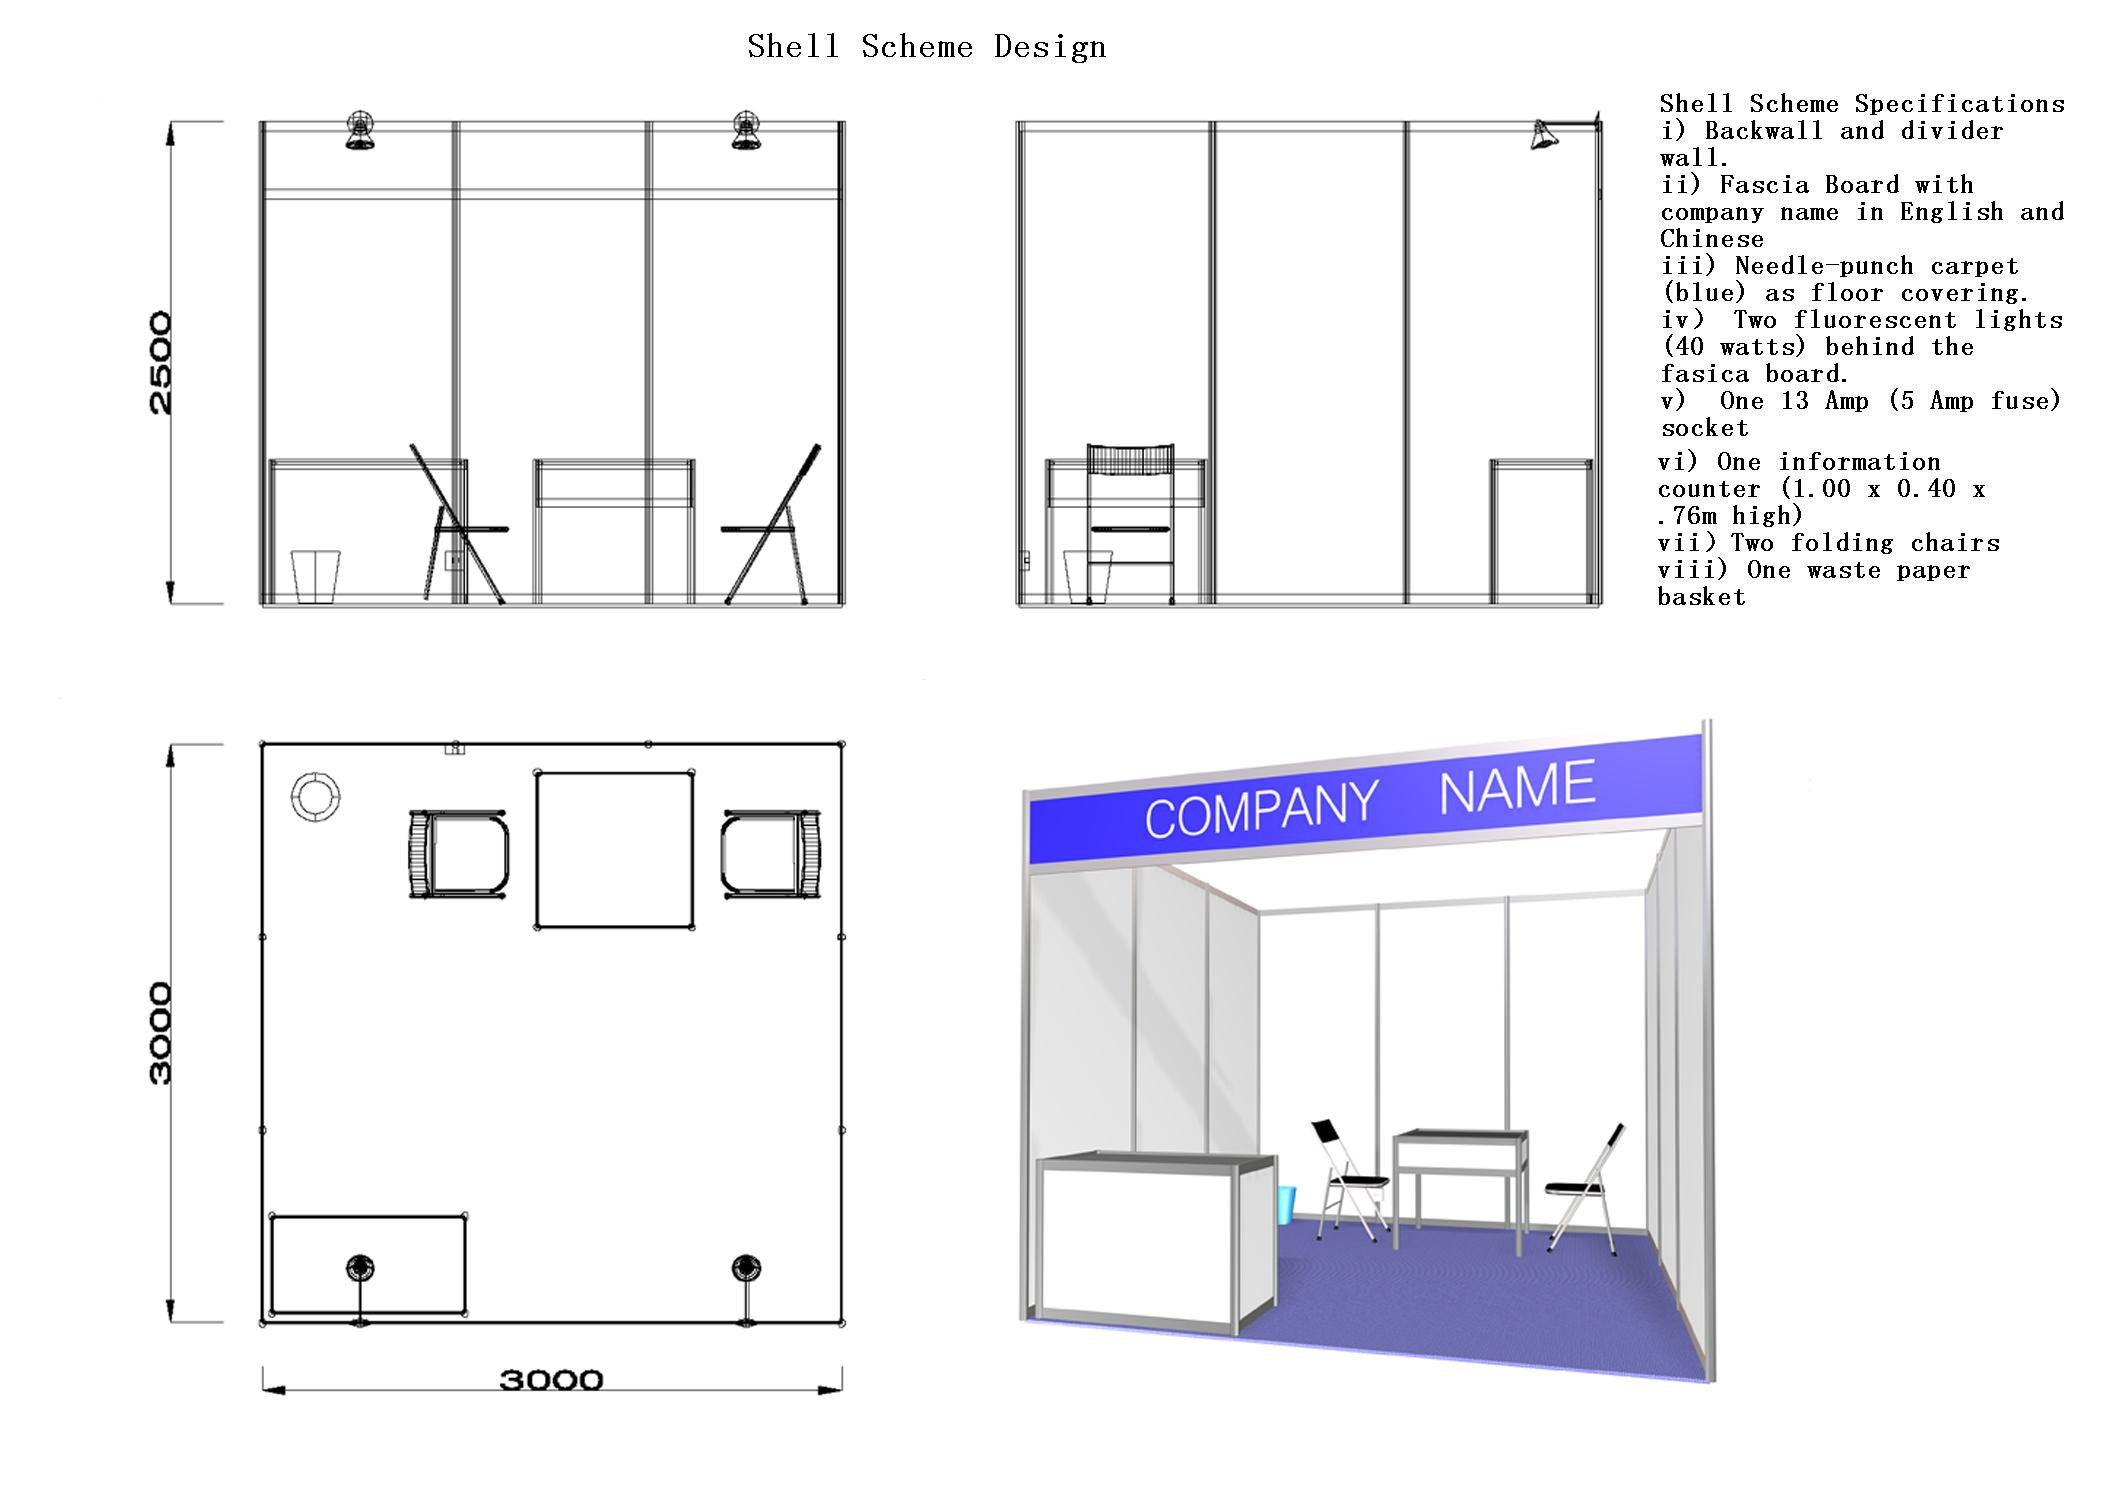 Exhibition Stand Design Specifications : Shell scheme booth malaysia variety standard